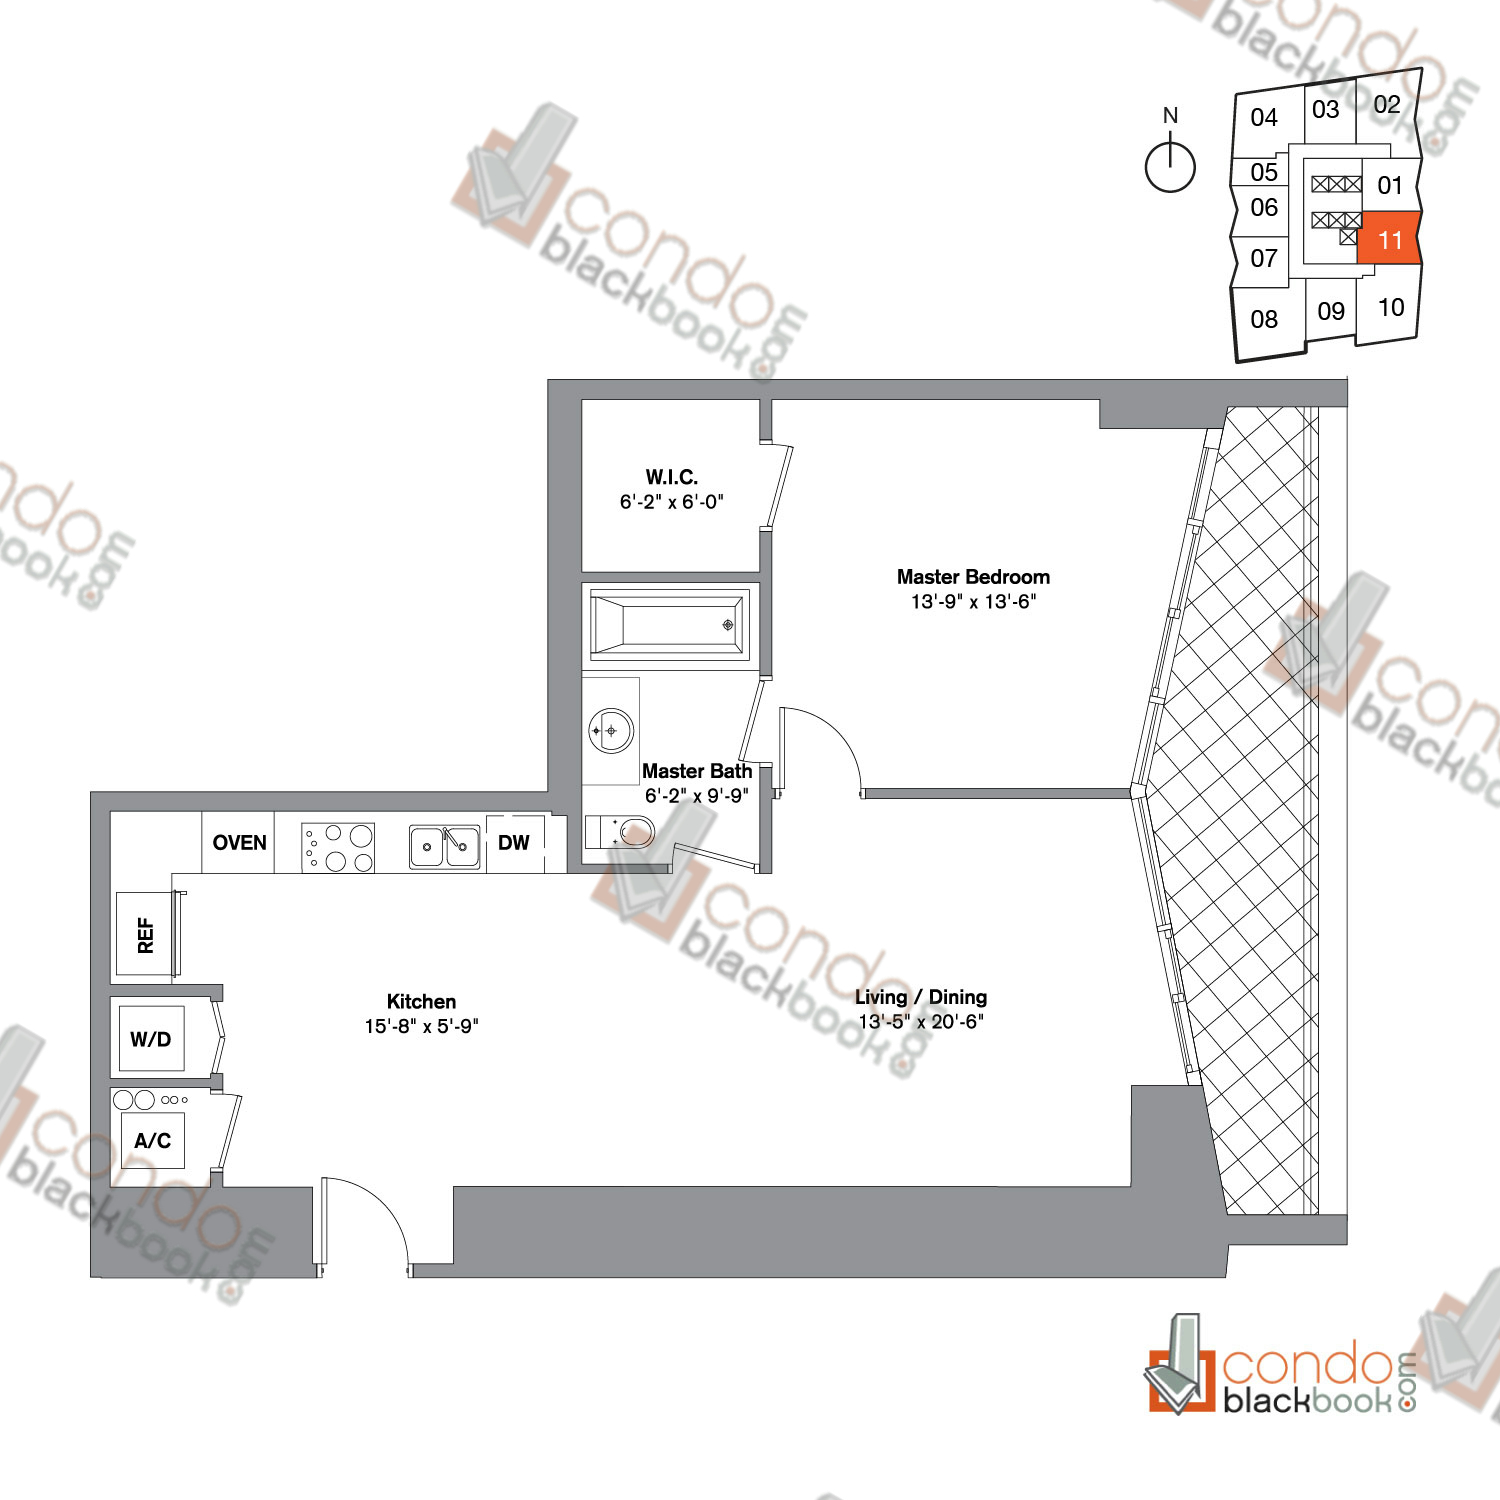 Floor plan for Icon Brickell Viceroy Brickell Miami, model Unit E, line 11, 1/1.5 bedrooms, 995 sq ft